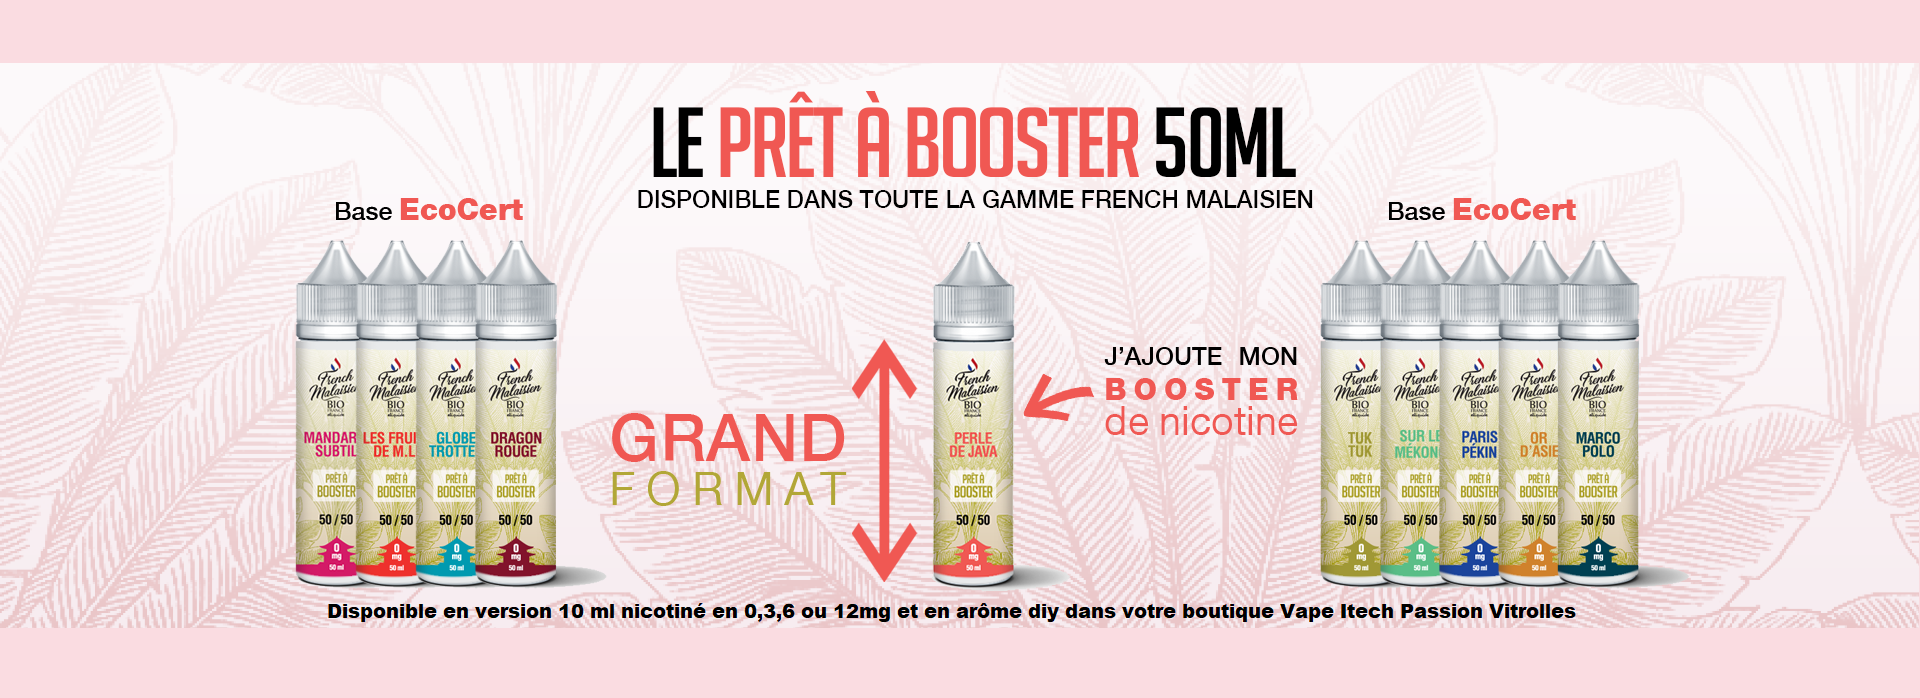 GAMME BIO FRANCE FRENCH MALAISIEN